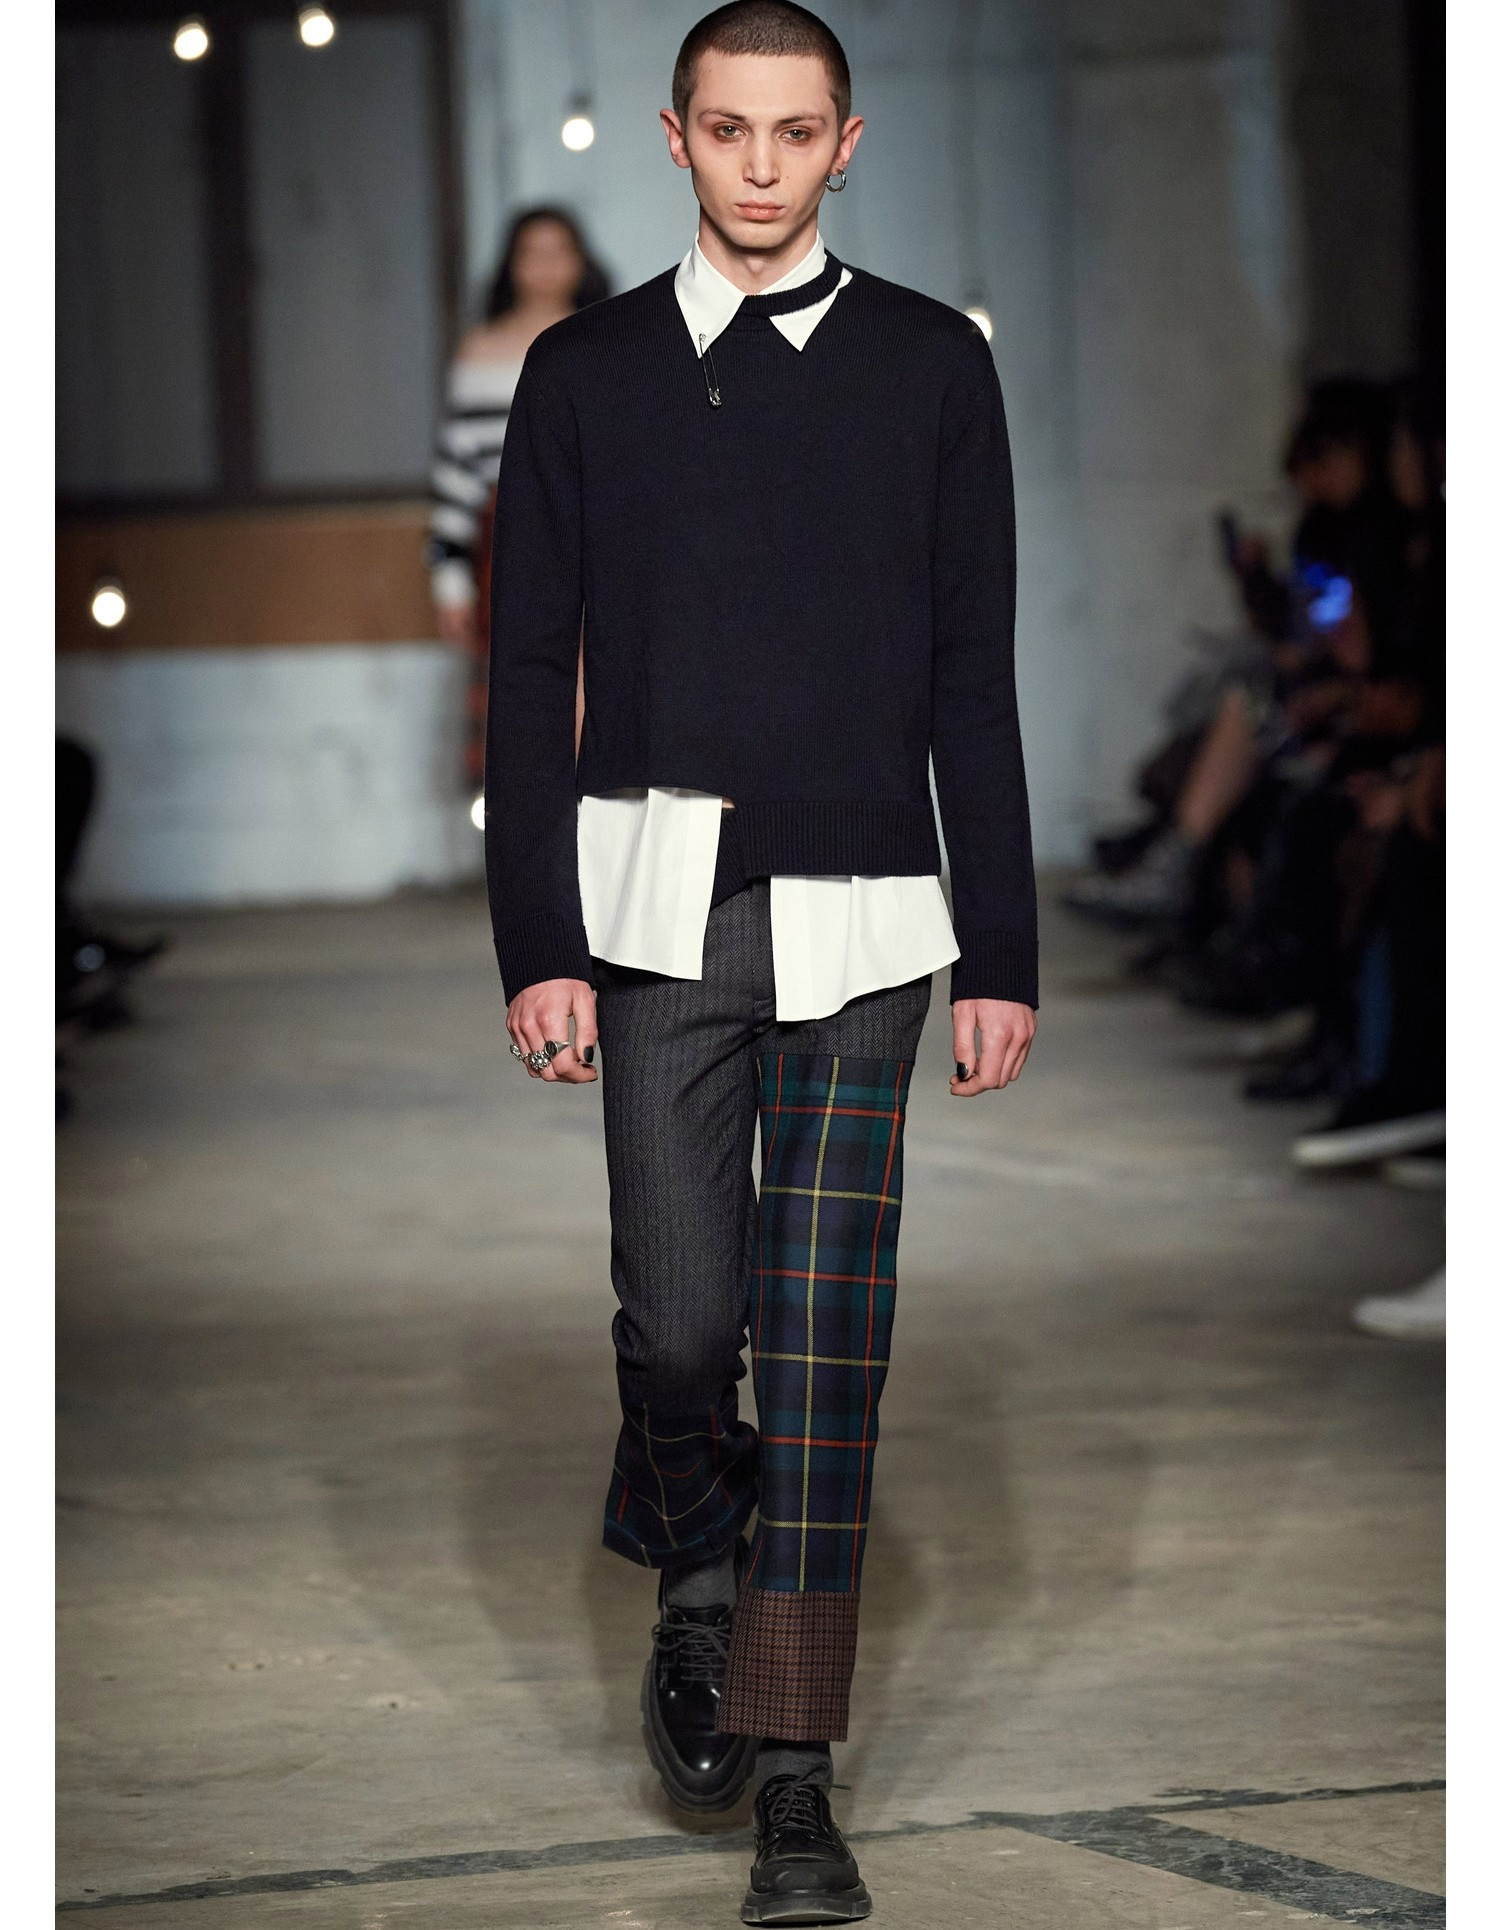 MONSE Crooked Tail Pullover in Midnight on Model Runway Look